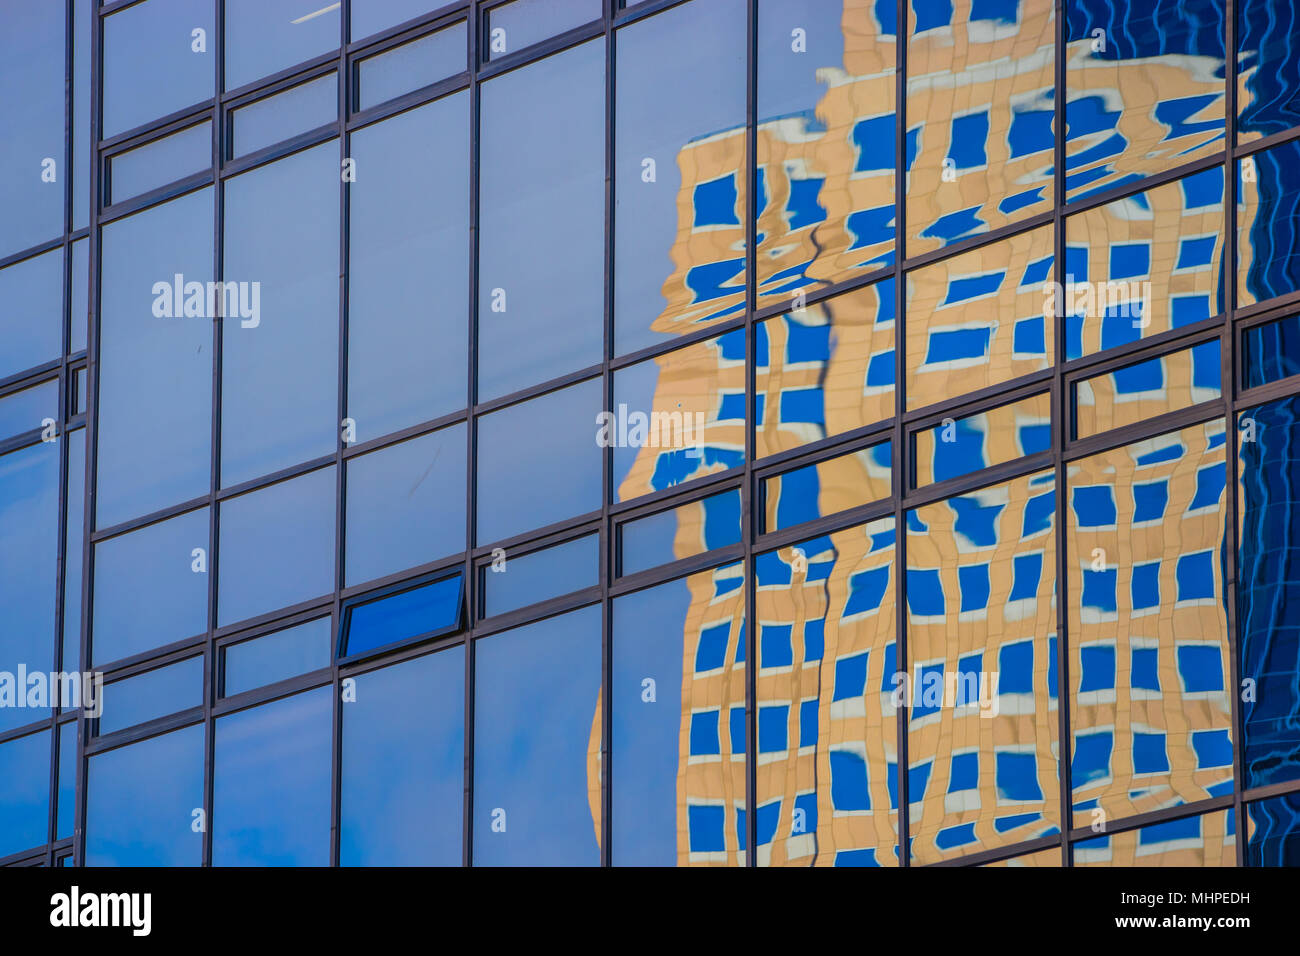 Warped view of reflected building seen in the glass and metal of opposing skyscraper. - Stock Image